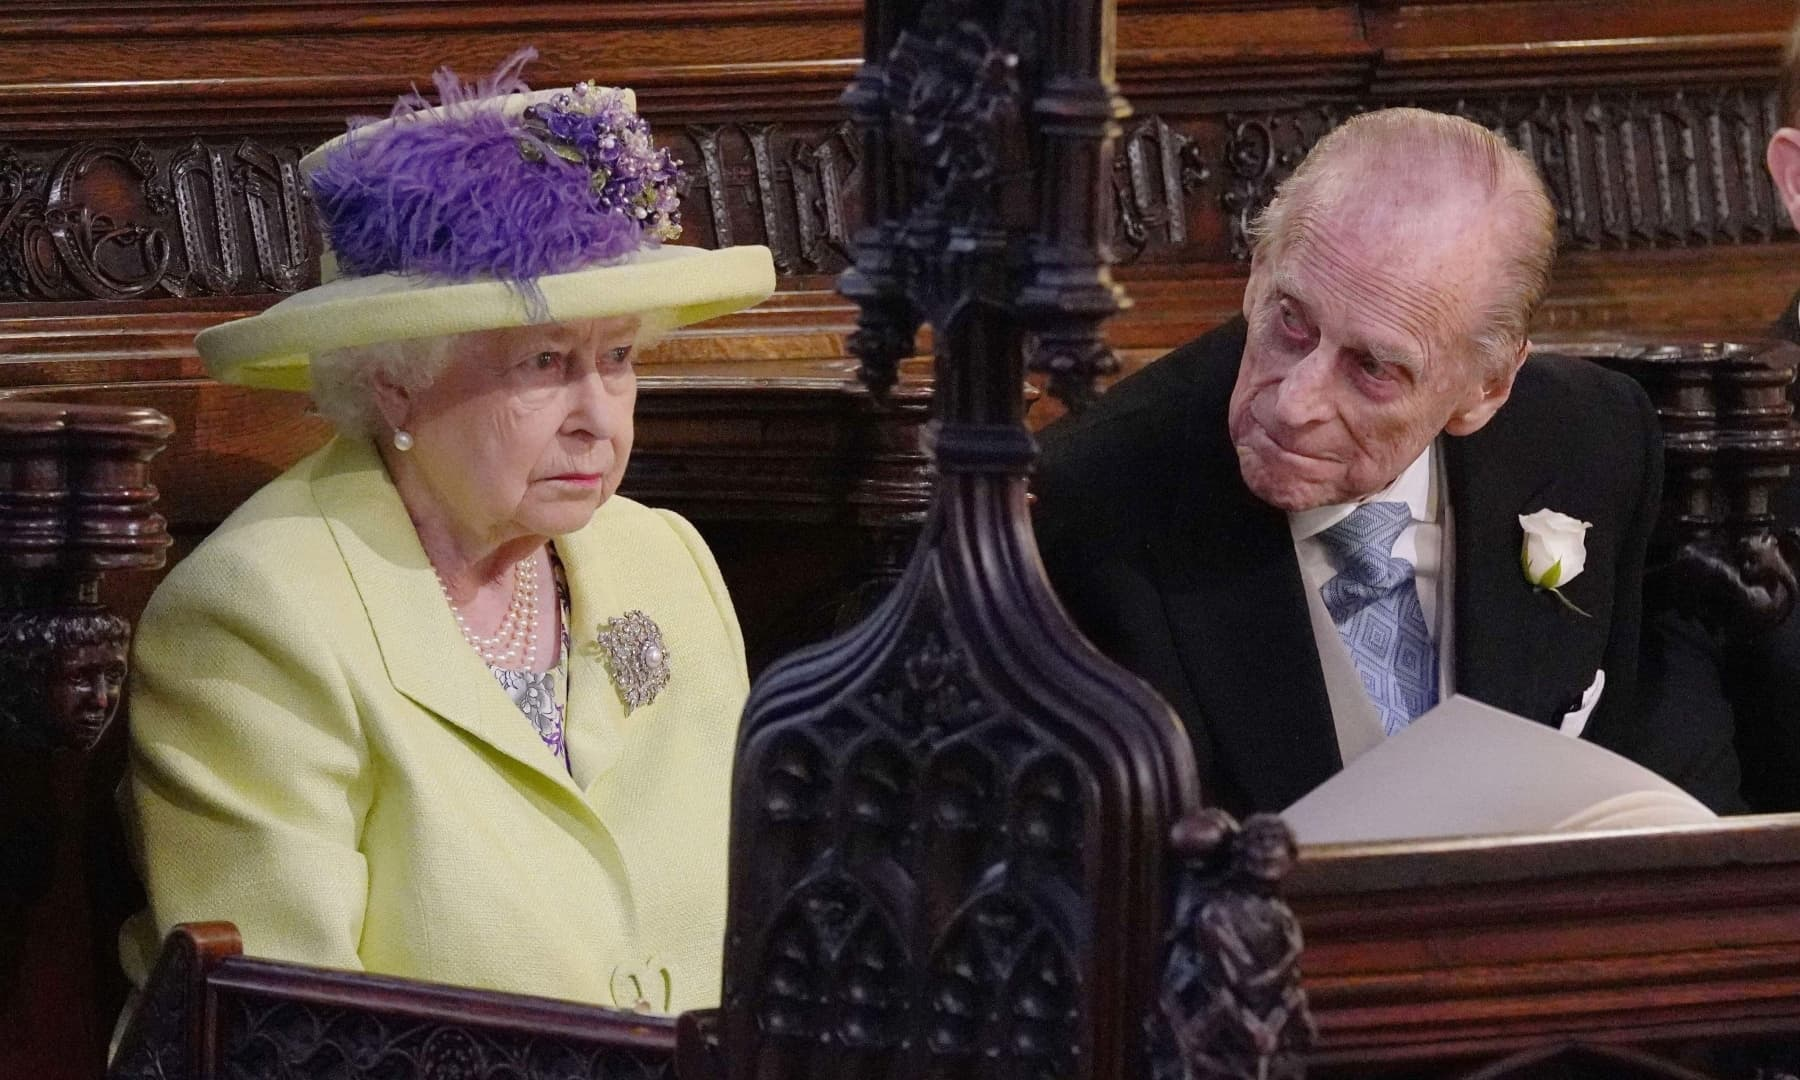 Queen Elizabeth and her husband Prince Philip at the wedding ceremony of Prince Harry and Meghan Markle. — AP/File